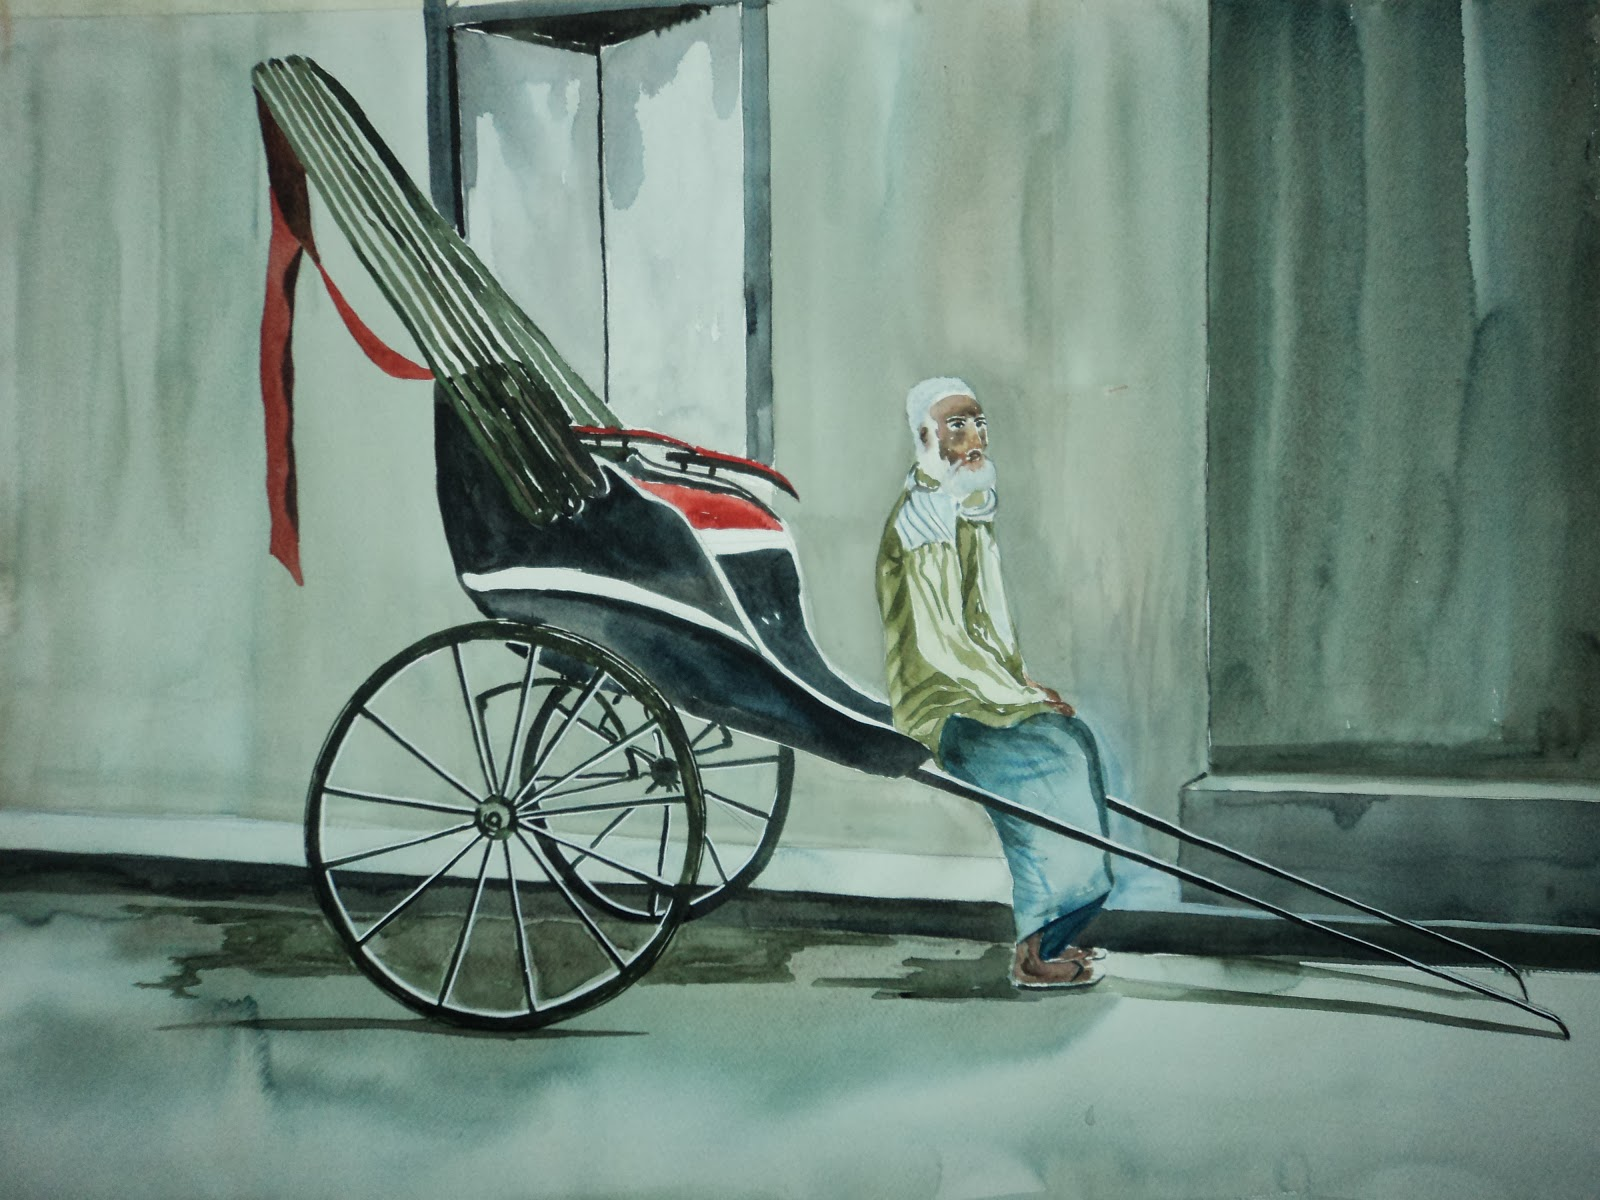 rickshaw puller essay Paragraph about a rickshaw puller essay,critisim the man who pulls rickshaw for money is a rickshaw puller.